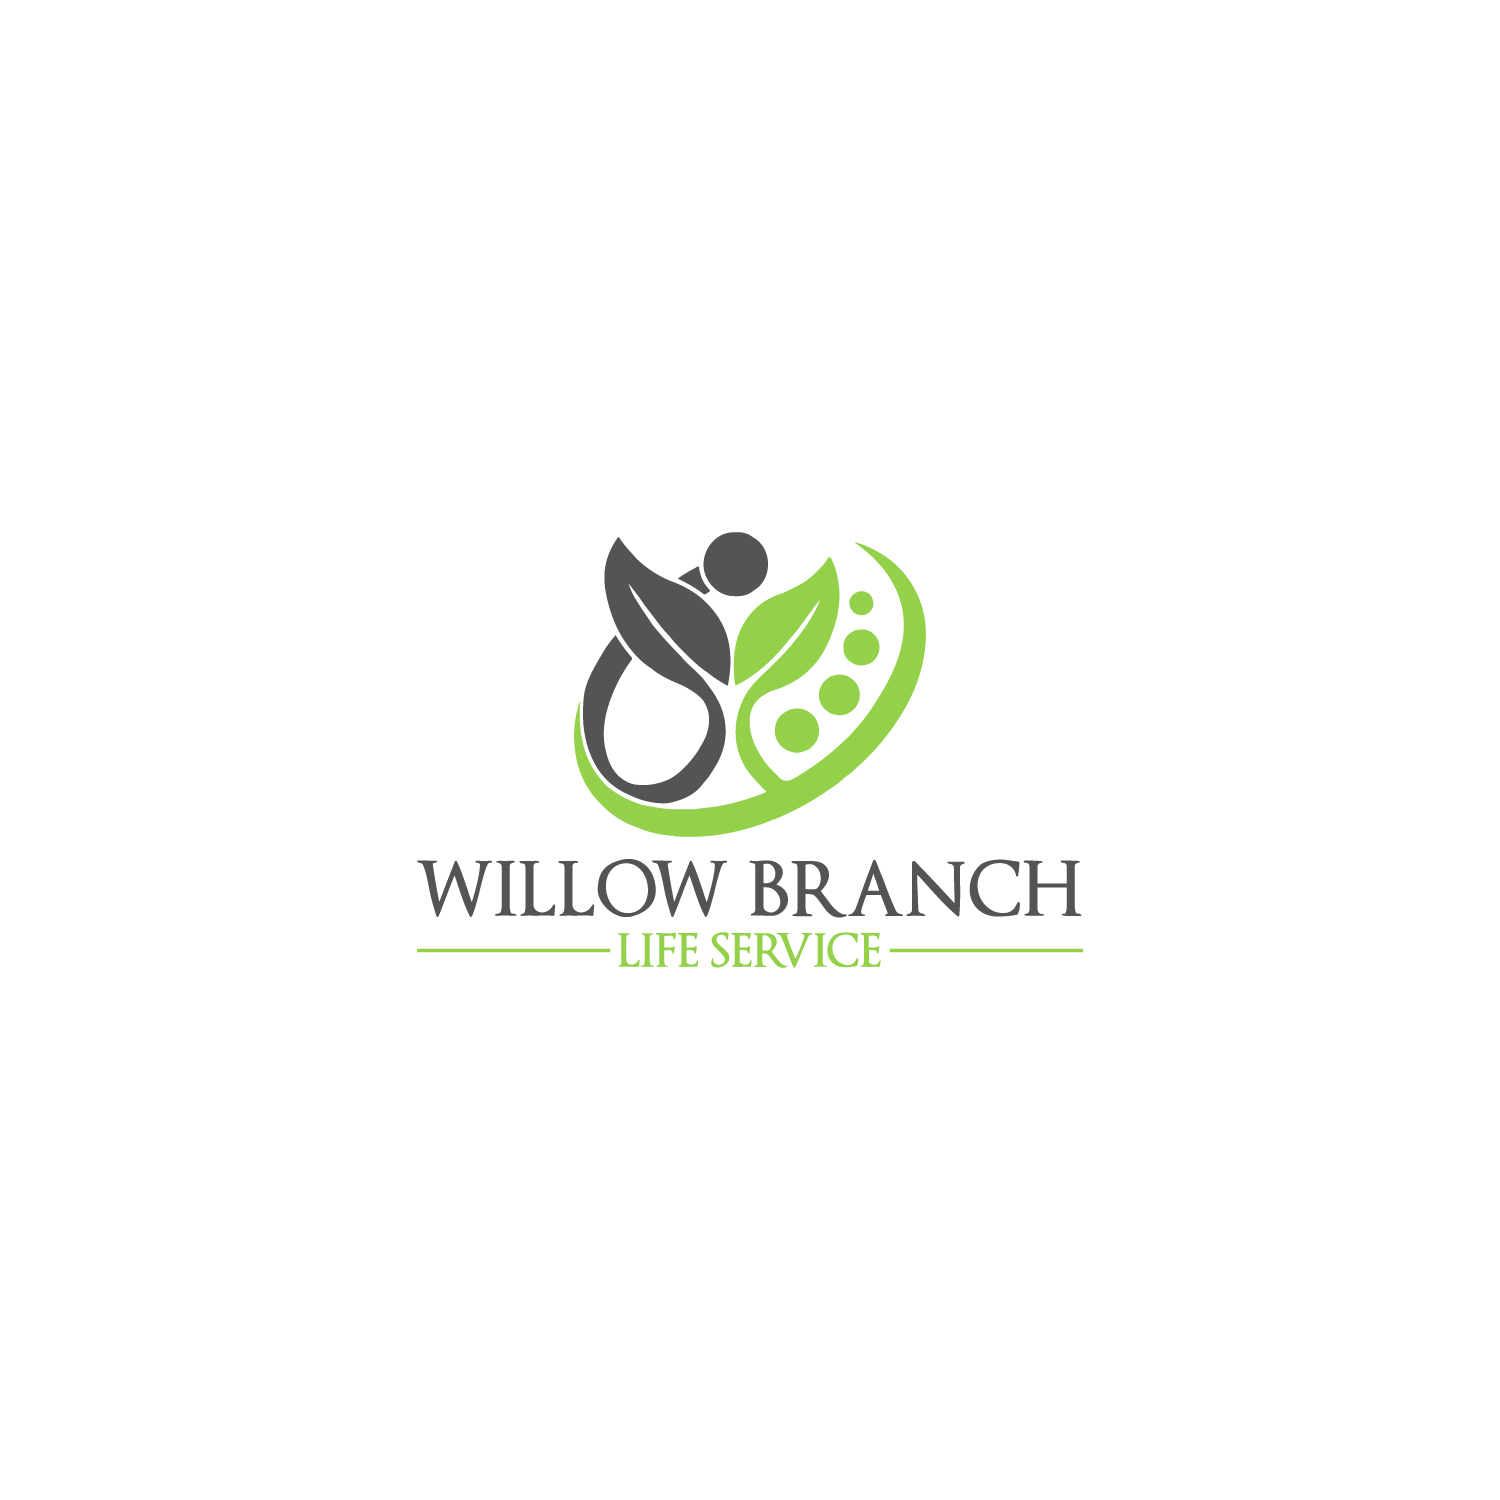 Logo Design by Badal Hossain - Entry No. 267 in the Logo Design Contest Artistic Logo Design for Willow Branch Life Service.